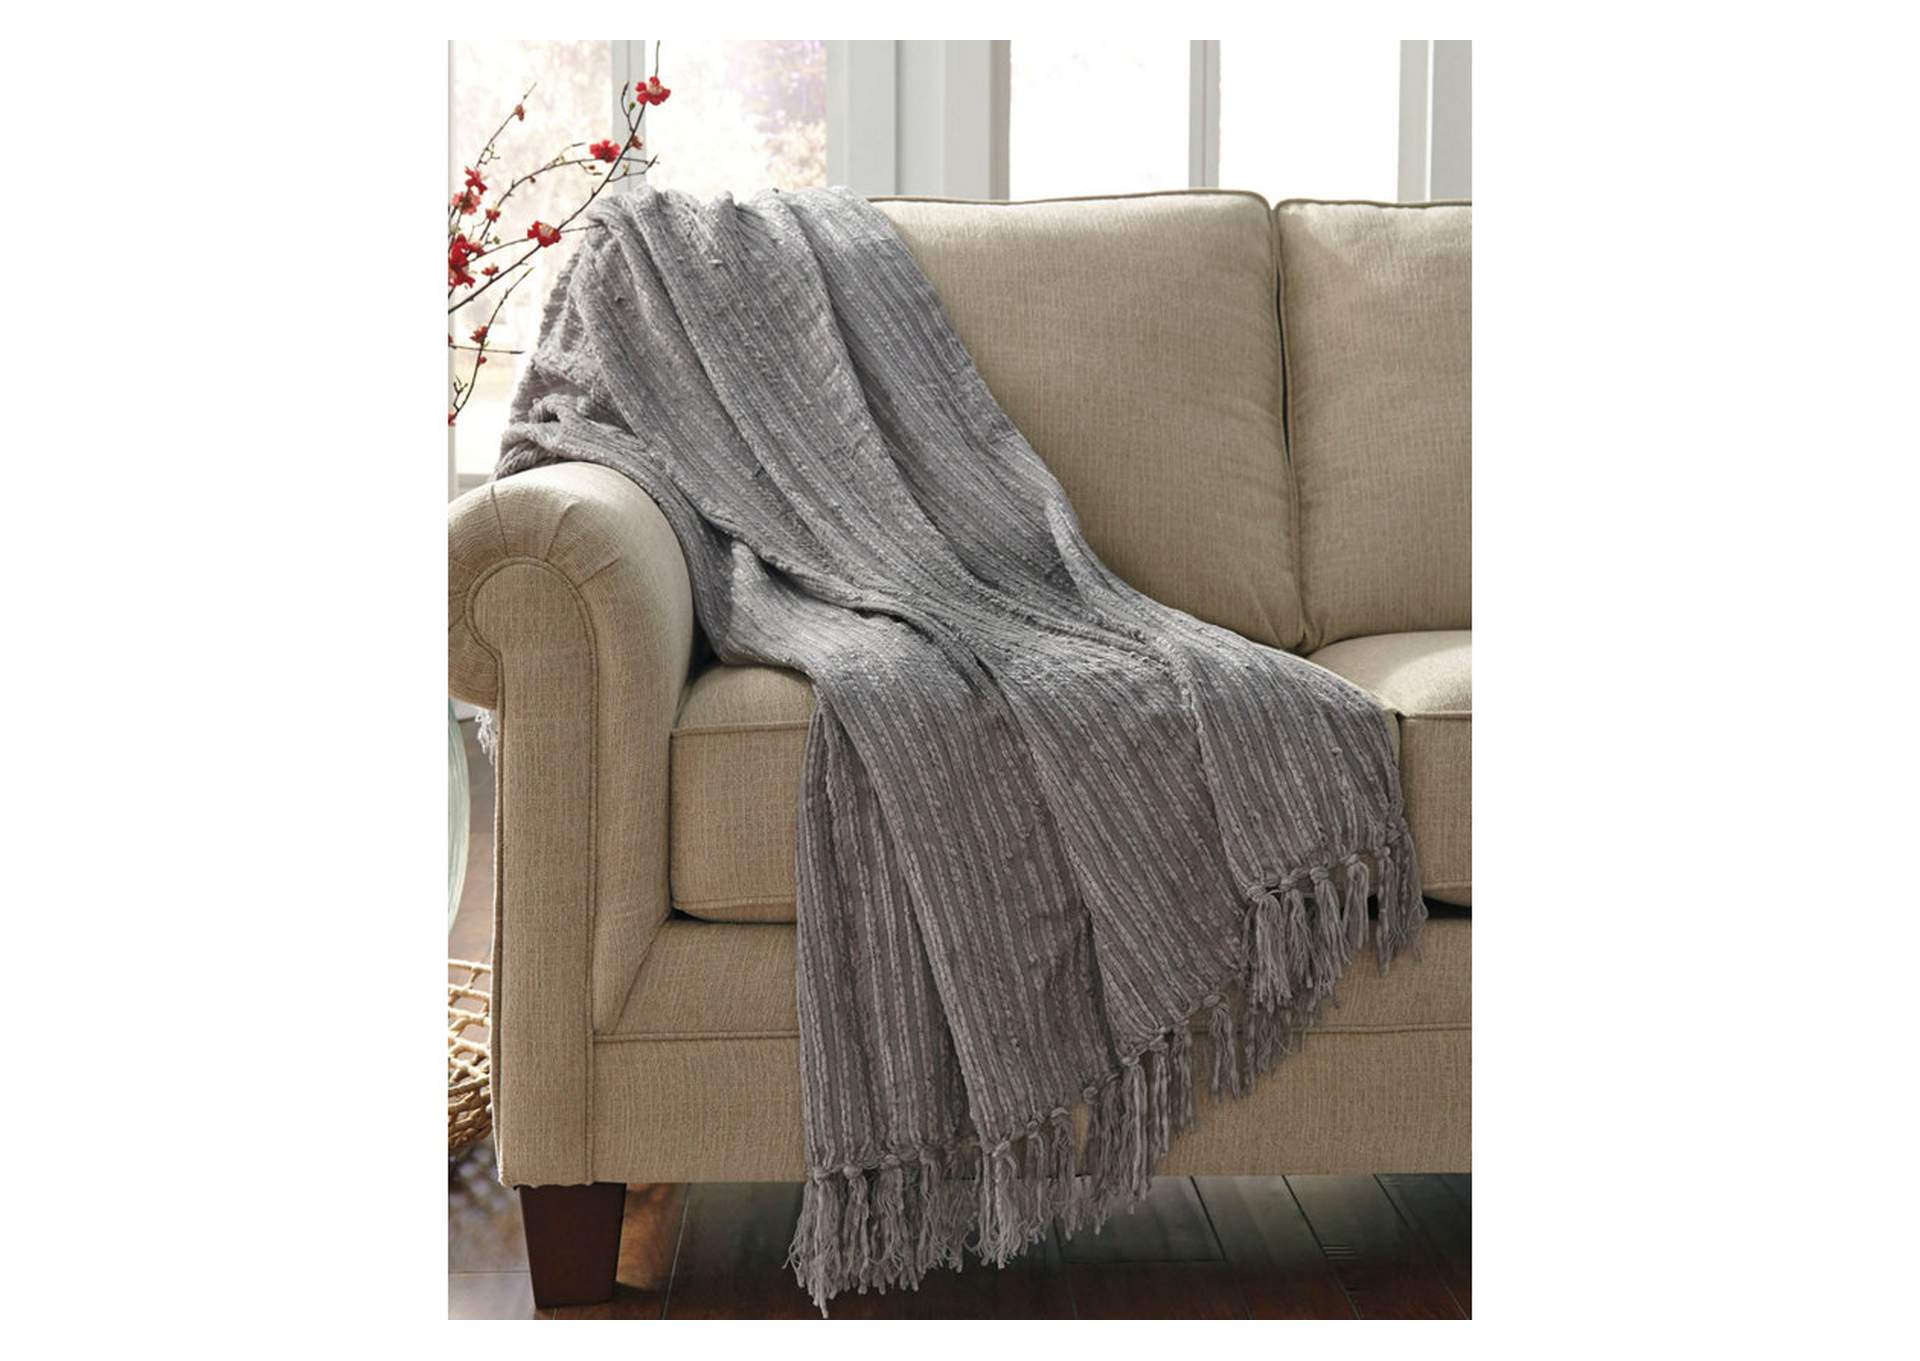 Noland Gray Throw,Signature Design By Ashley